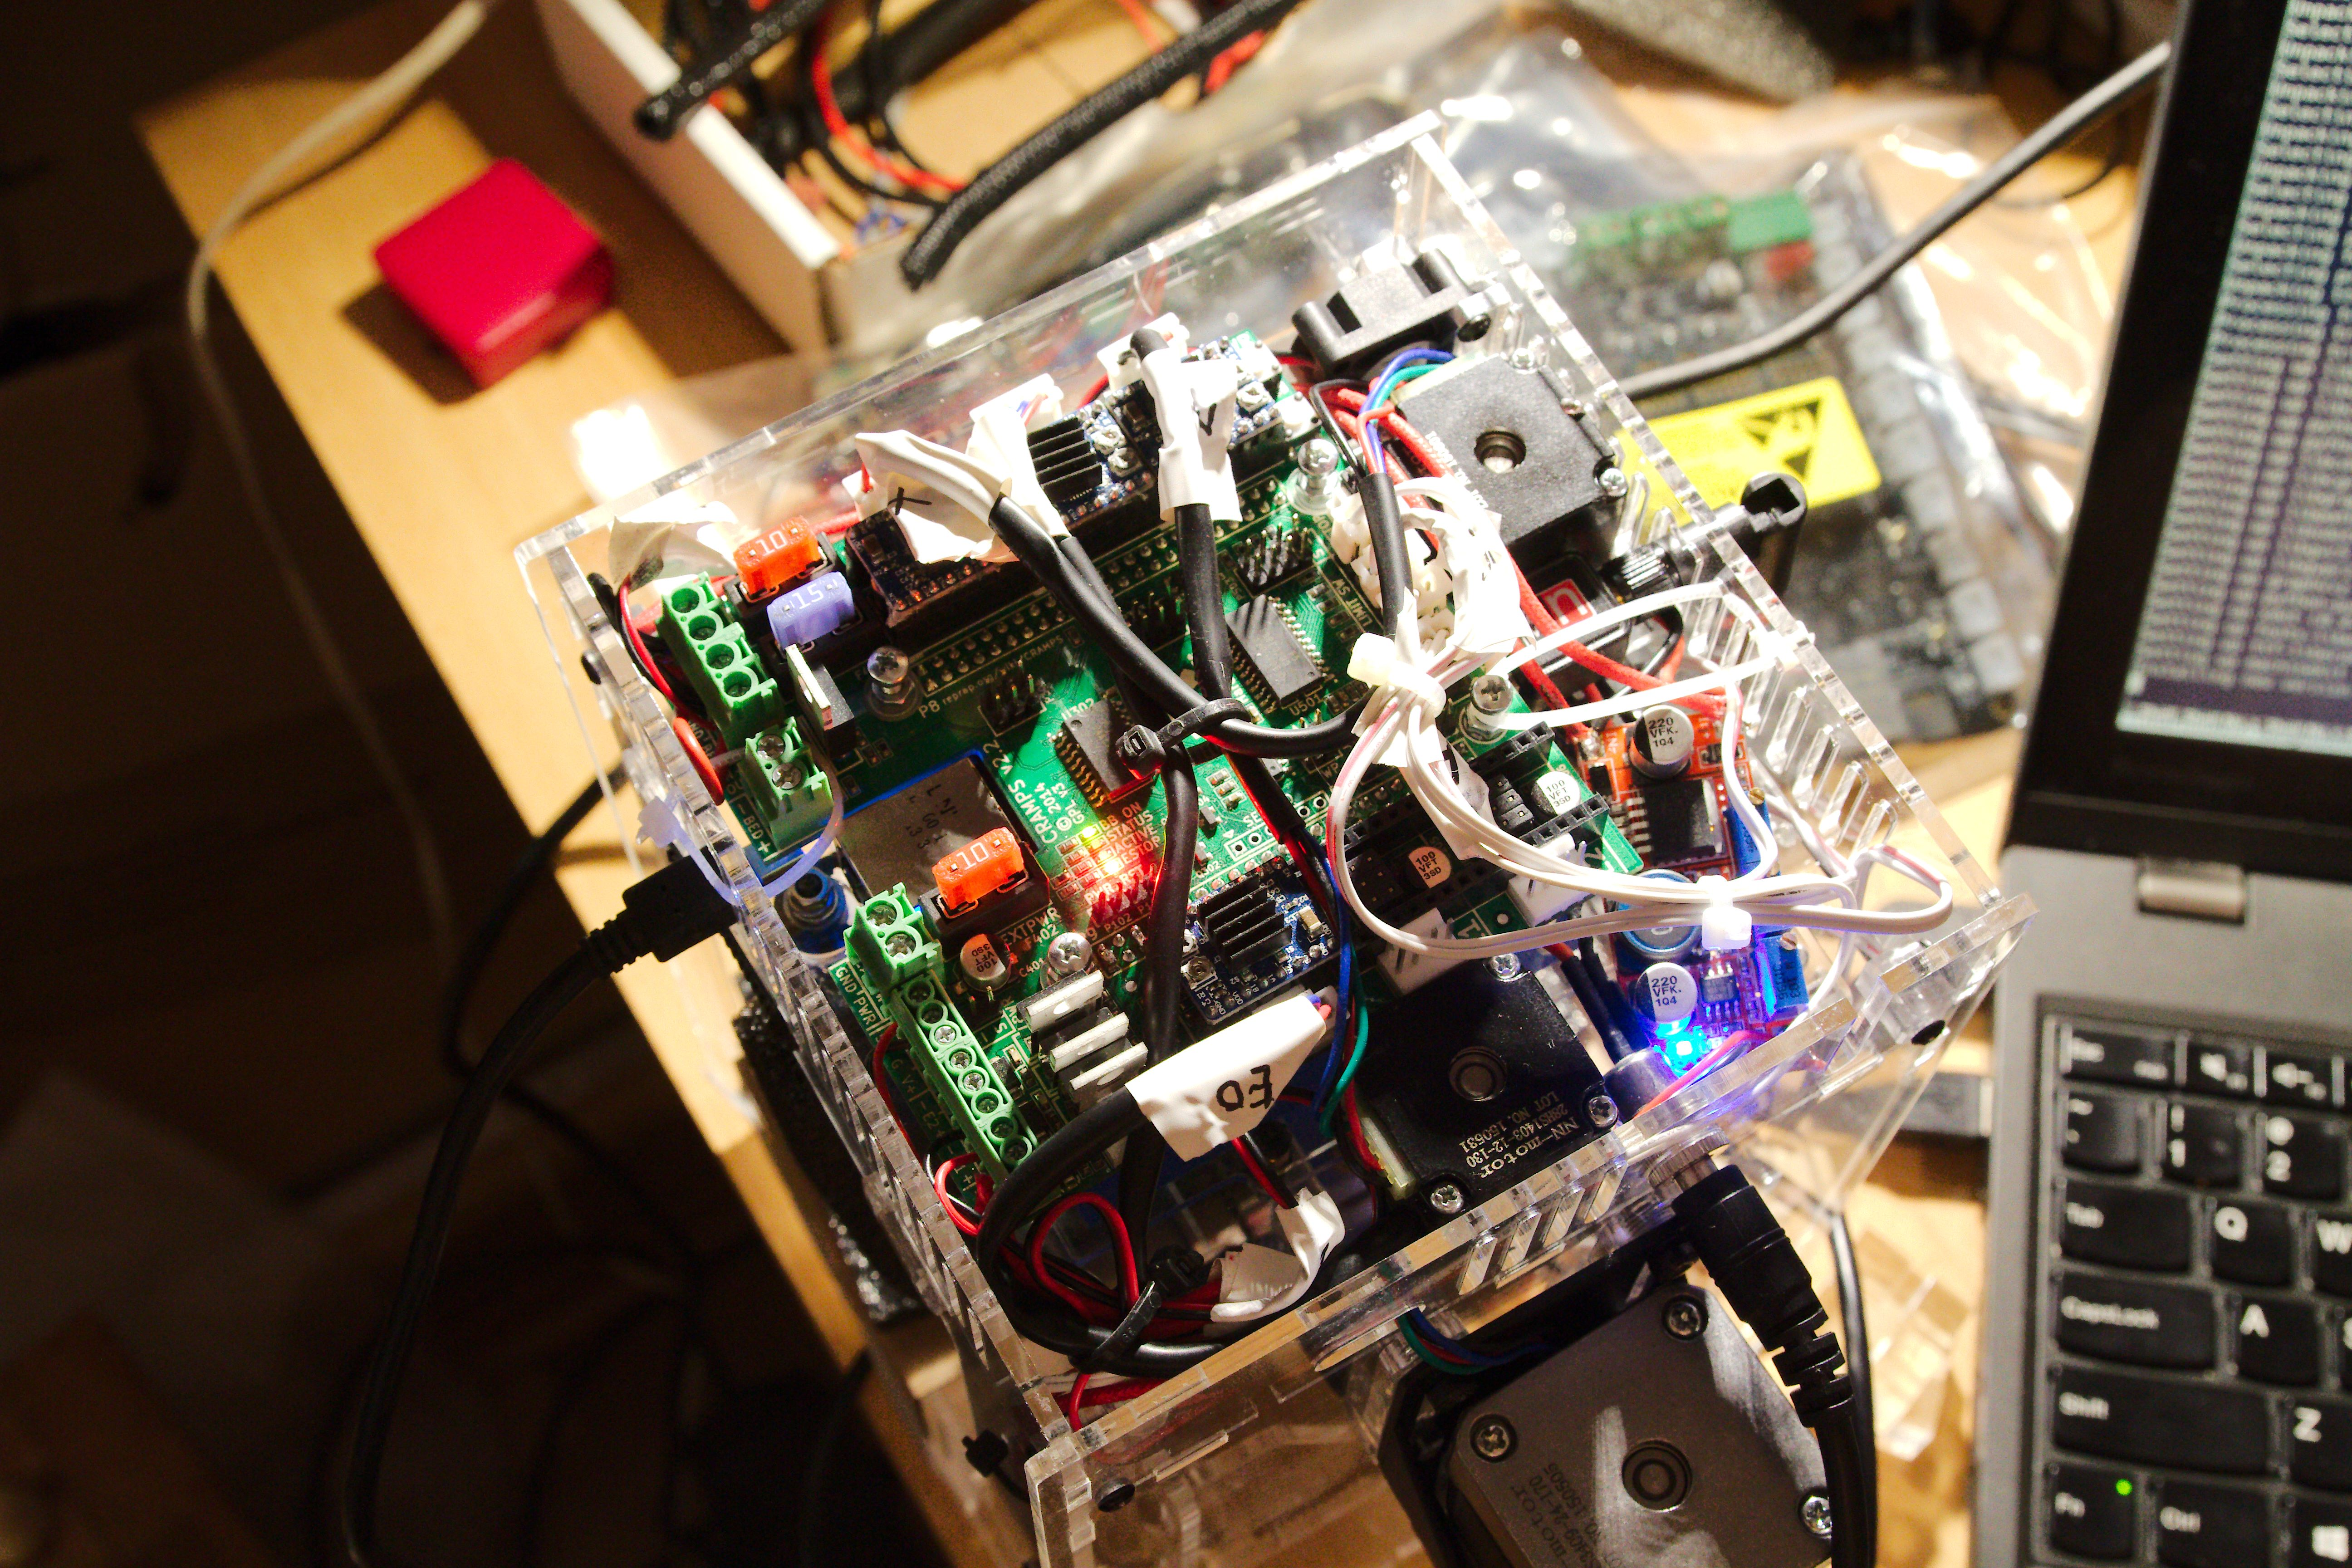 Mini 3d Printer From Hobbyking Running With Cramps Board And Camt Launching Firstever For Printed Circuit Therefore One Has To Connect All The Power Inputs Of 12v Supply That Comes